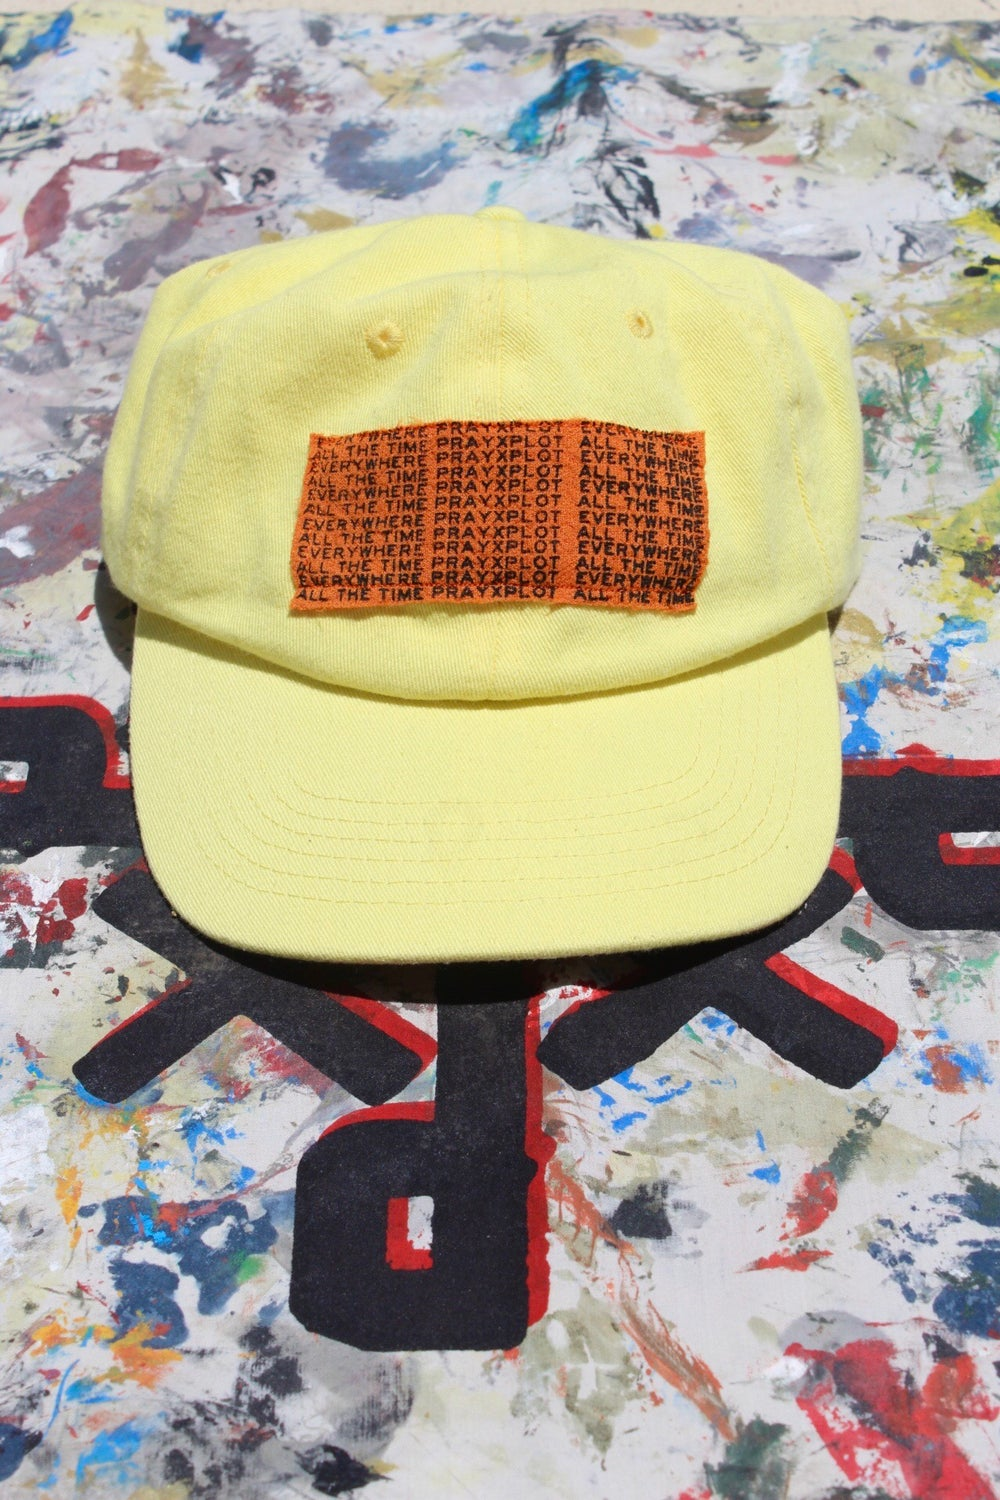 e.w.a.t. hat in yellow